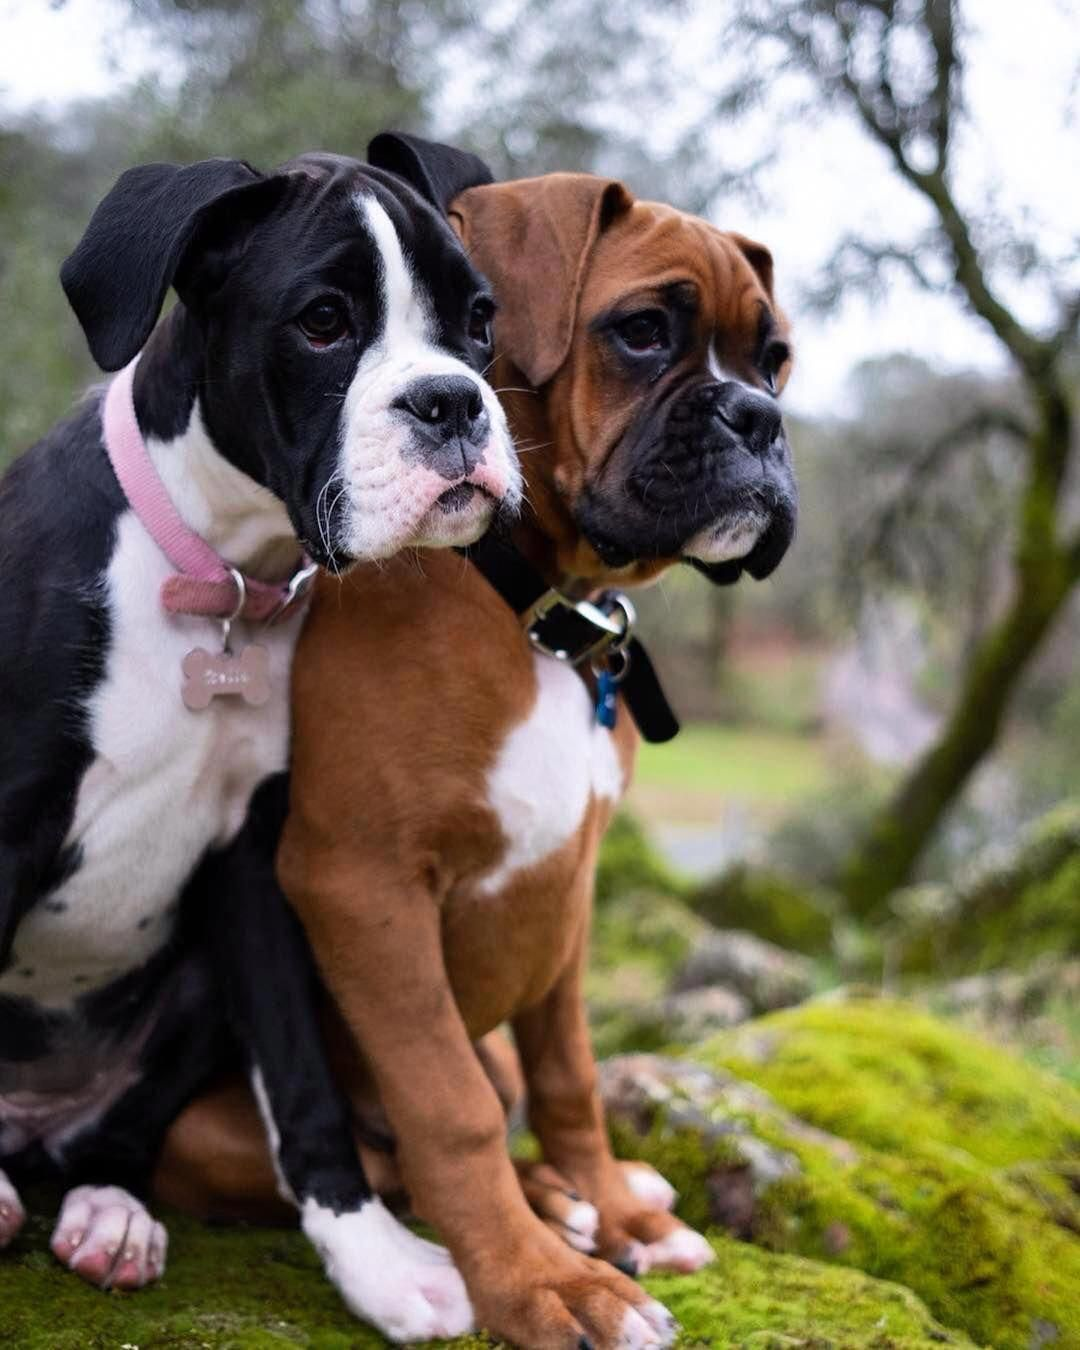 Things We All Like About The Bright Boxer Boxerdogfans Boxerdogface Boxerdogsfunny Boxer Dogs Brindle Boxer Dogs Boxer Puppies